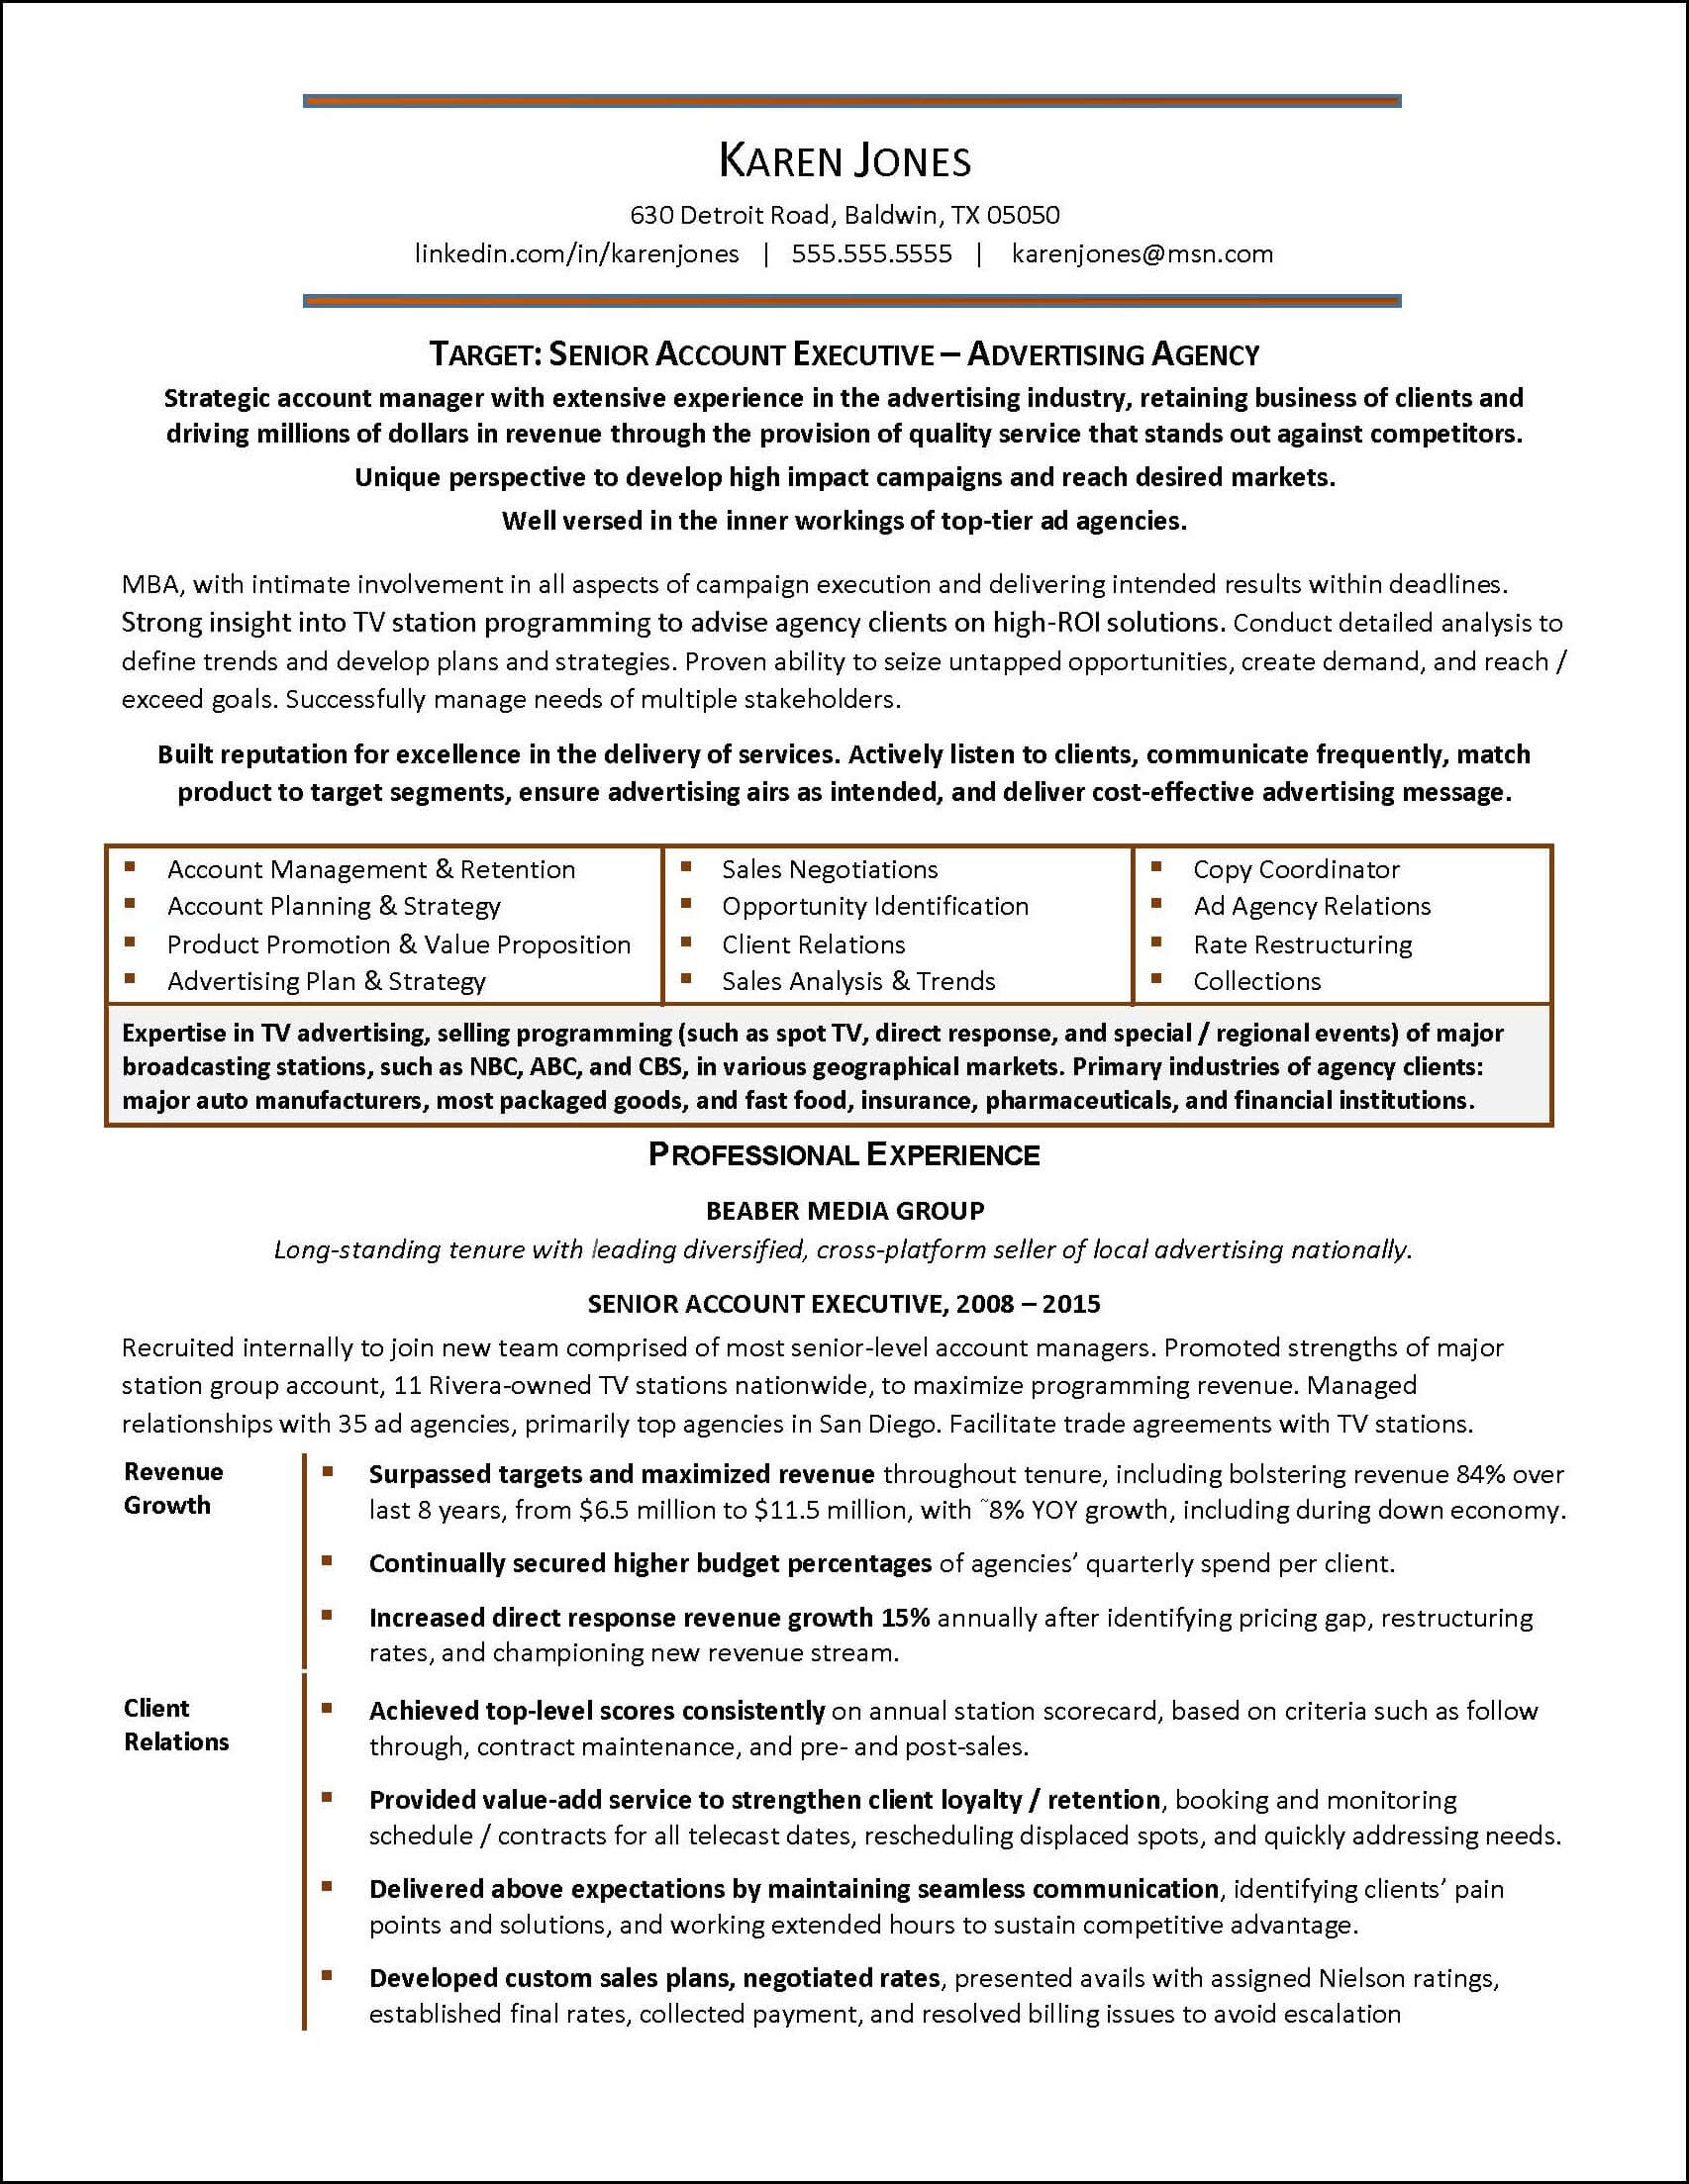 advertising agency example resume sample resume written to help an advertising industry account executive advance her career page 1